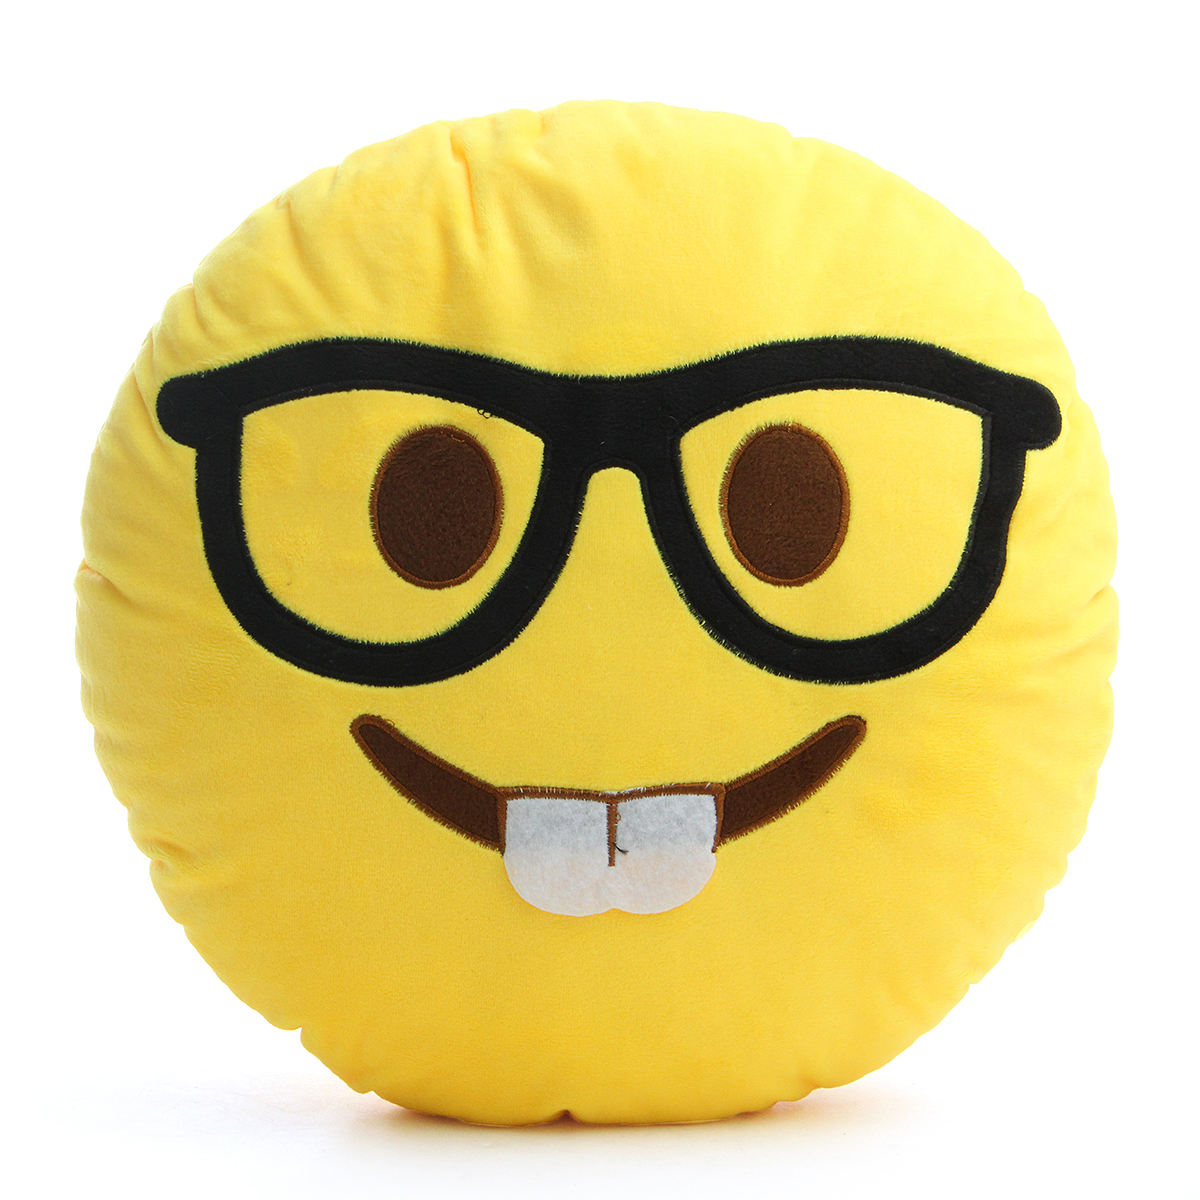 Buy 35CM Large Front Teeth Nerd Emoji Emoticon Plush PP Cotton Soft Toy